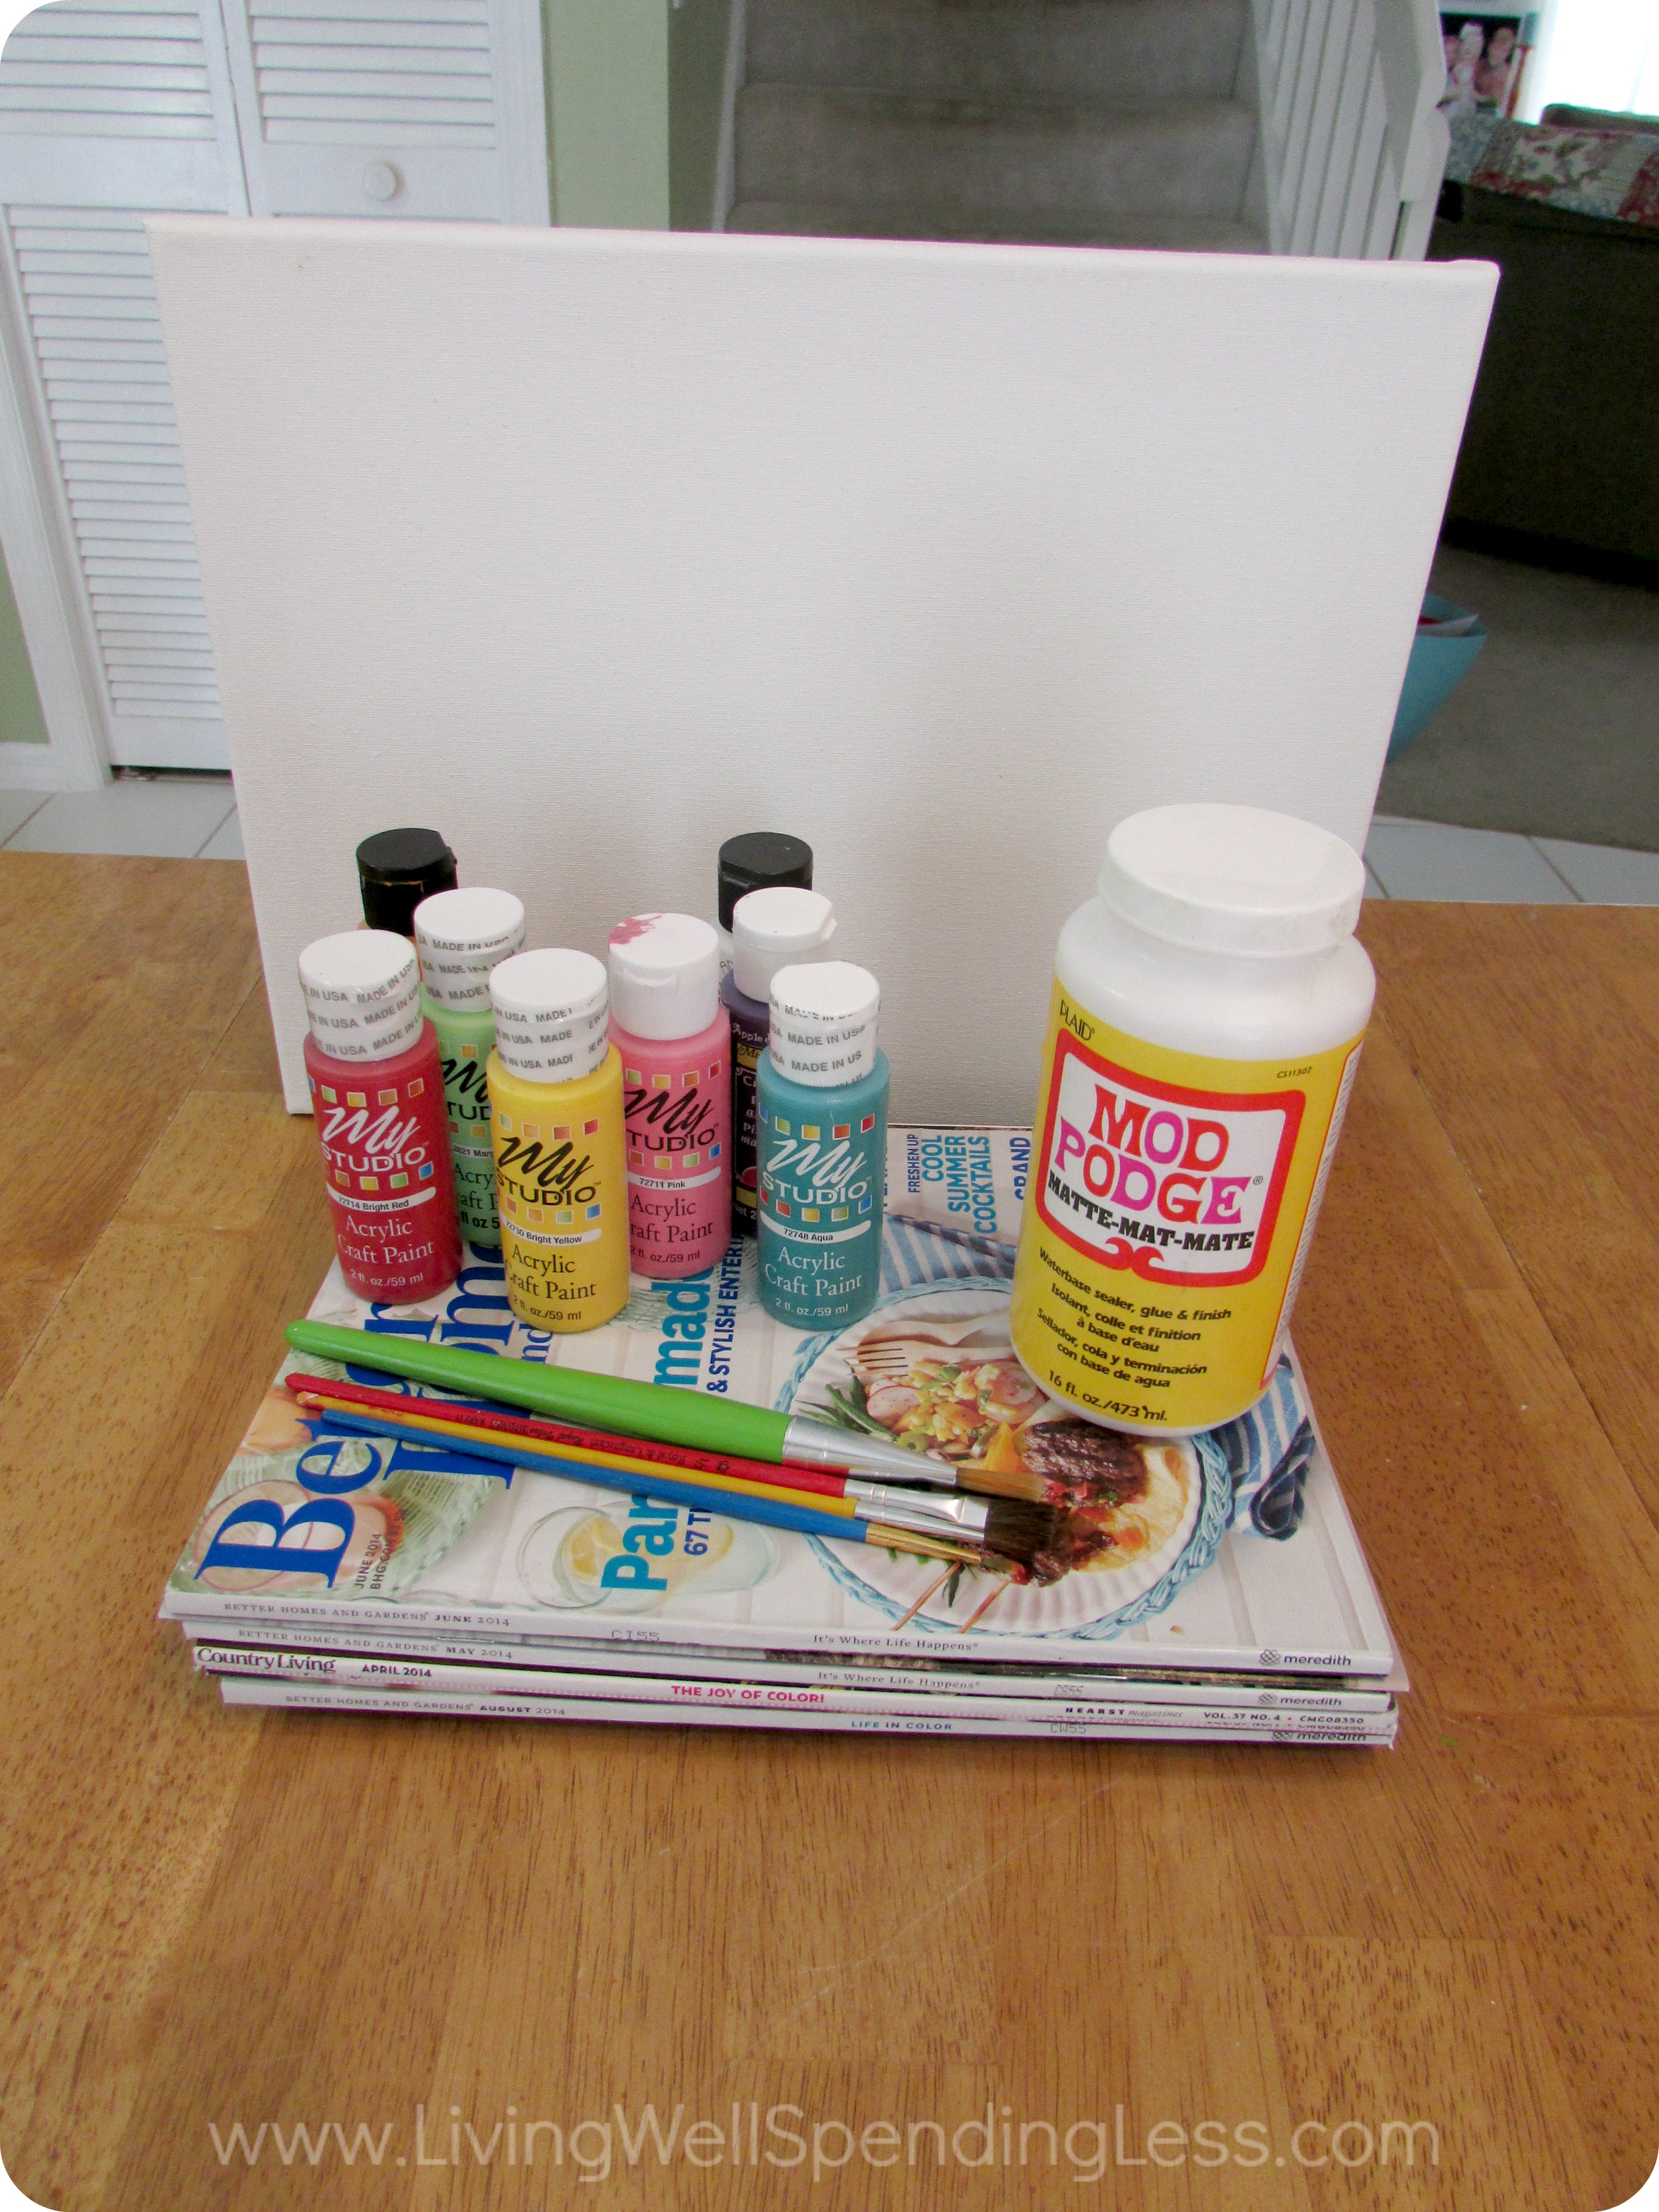 Gather all the necessary materials: Canvases, acrylic paints, paint brushes, old magazines, scissors and Mod Podge.